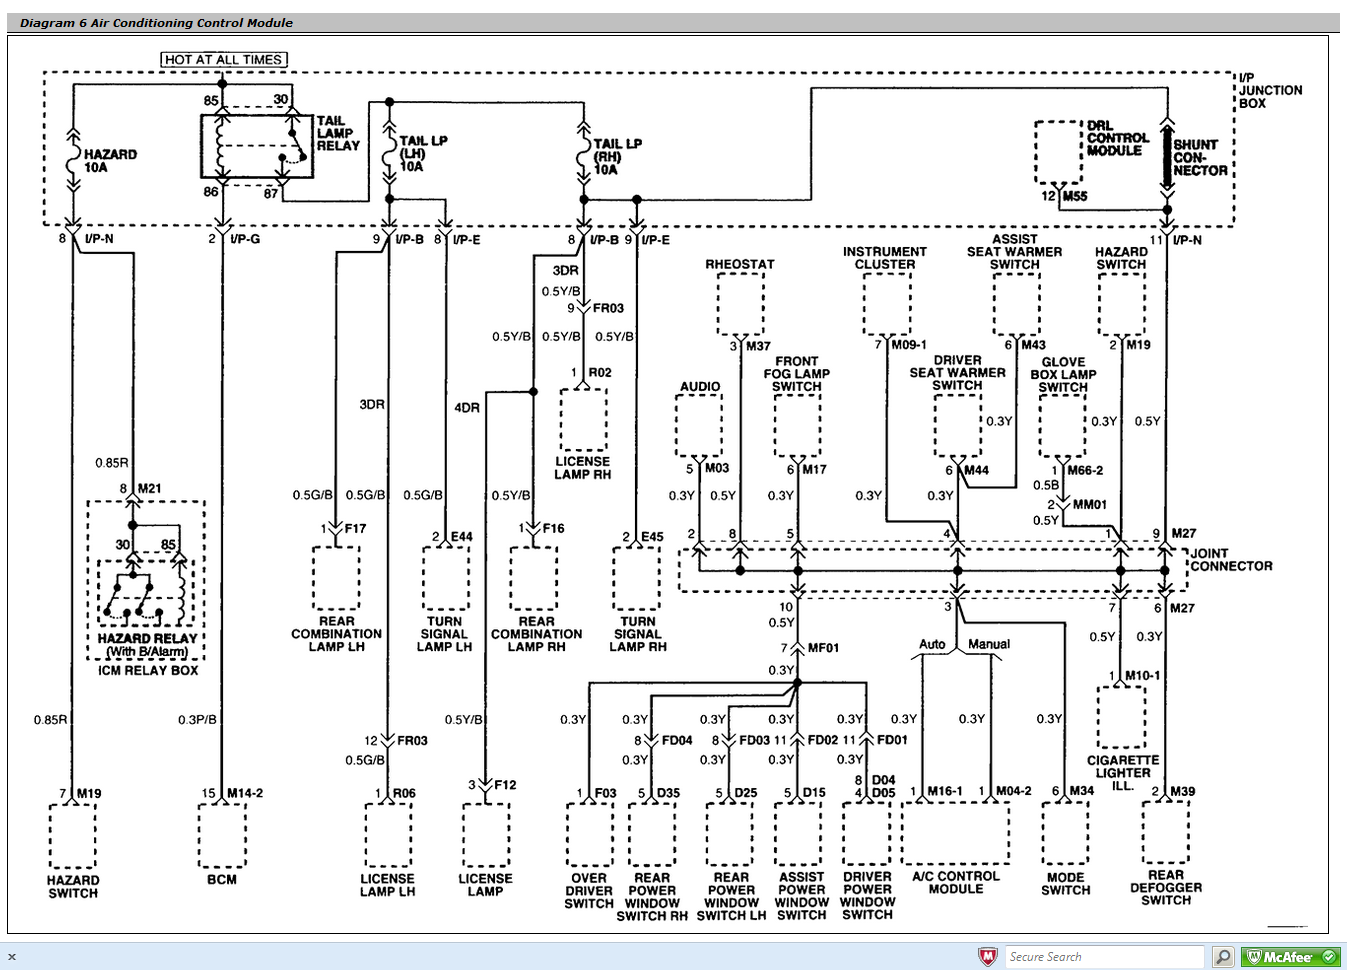 Hyundai Electrical Schematic Wiring Harness Schematics I20 Diagram Im Installing A Cng Kit On My Brothers Car And I Need